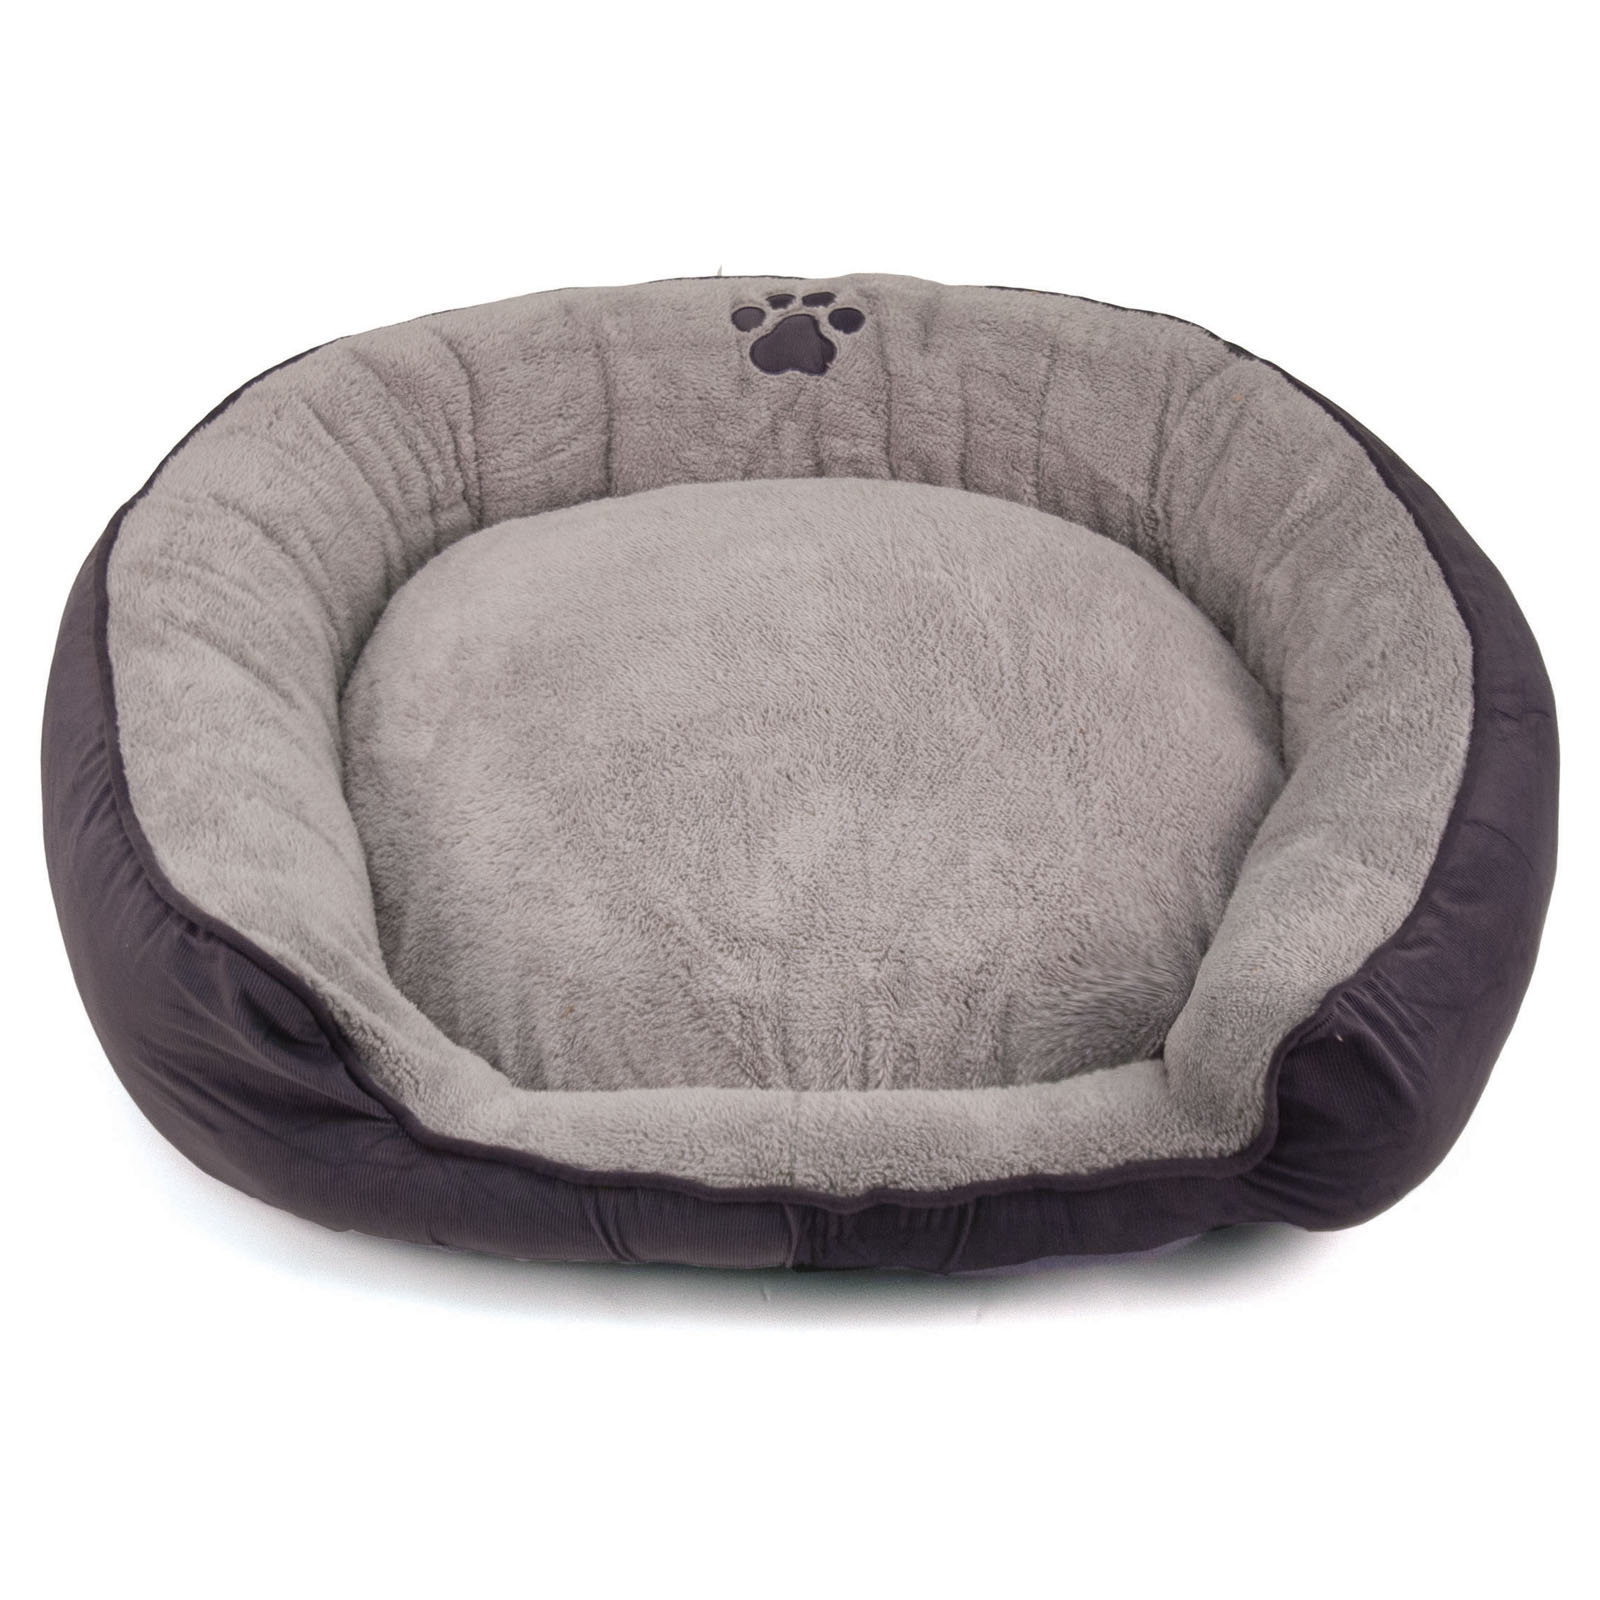 bowsers platinum series microvelvet donut dog bed  hayneedle -